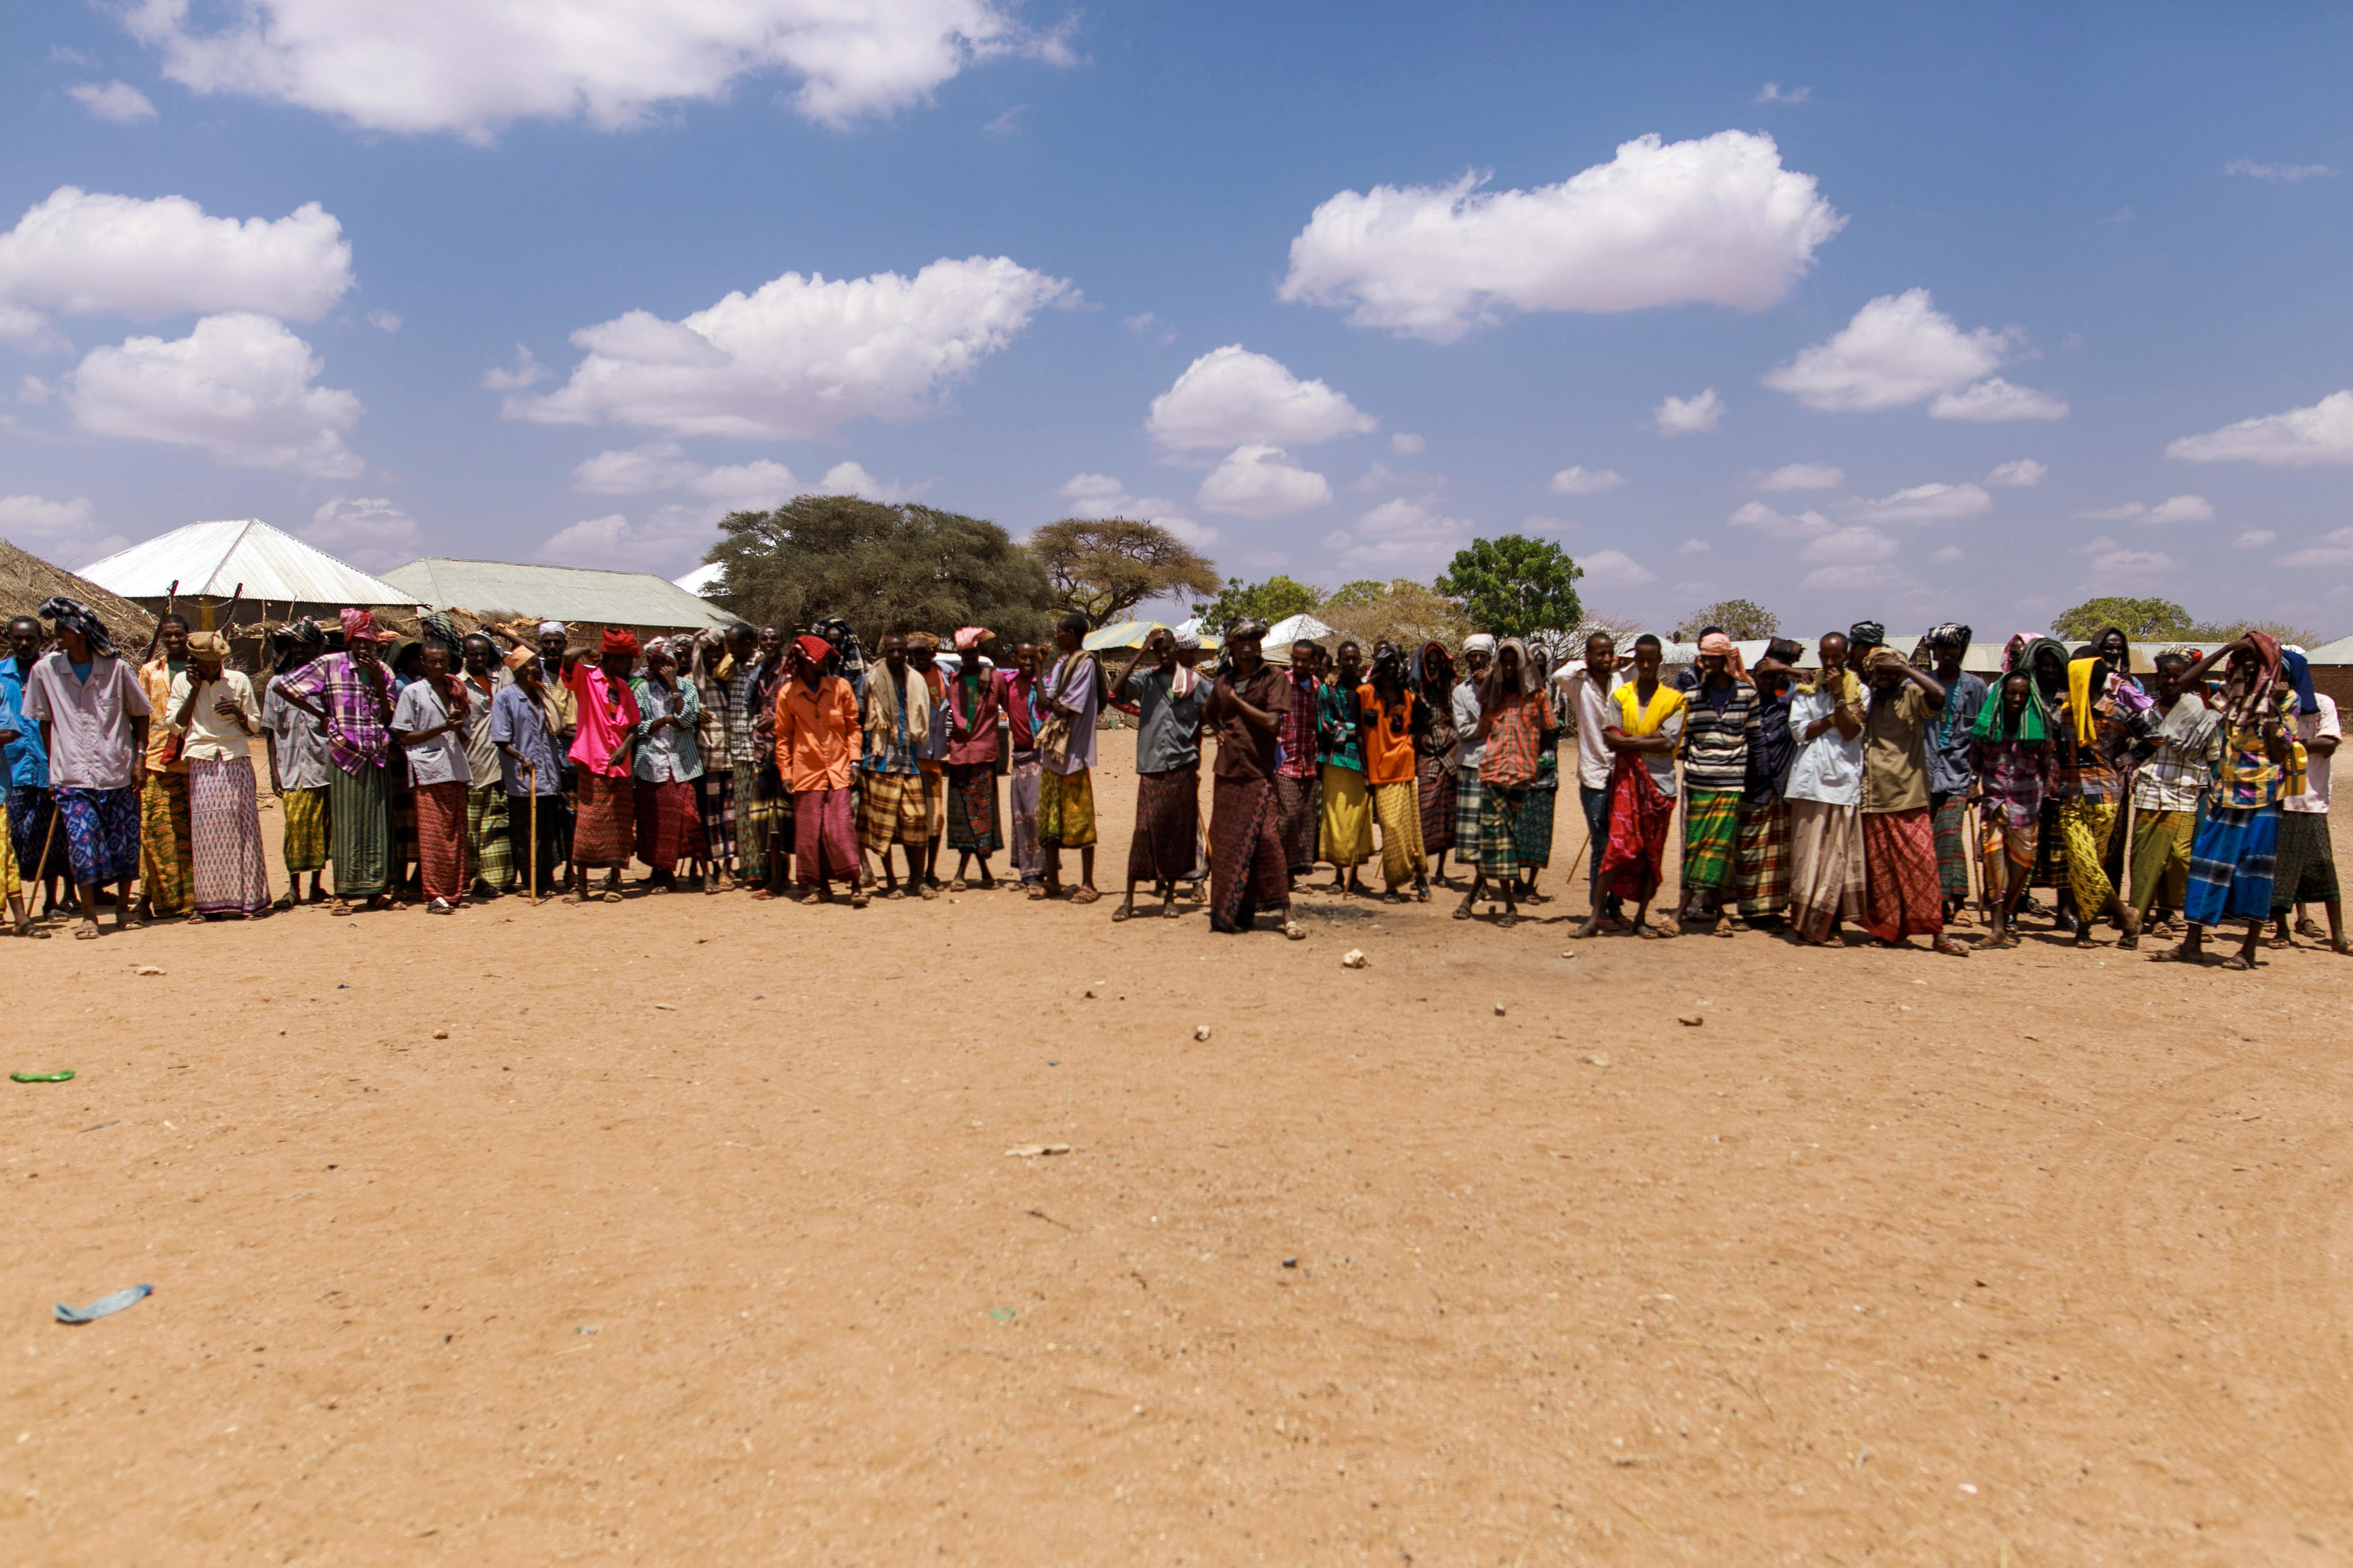 Ethiopian nomads who have settled in a village in the Somali region of Ethiopia due to persistent drought.